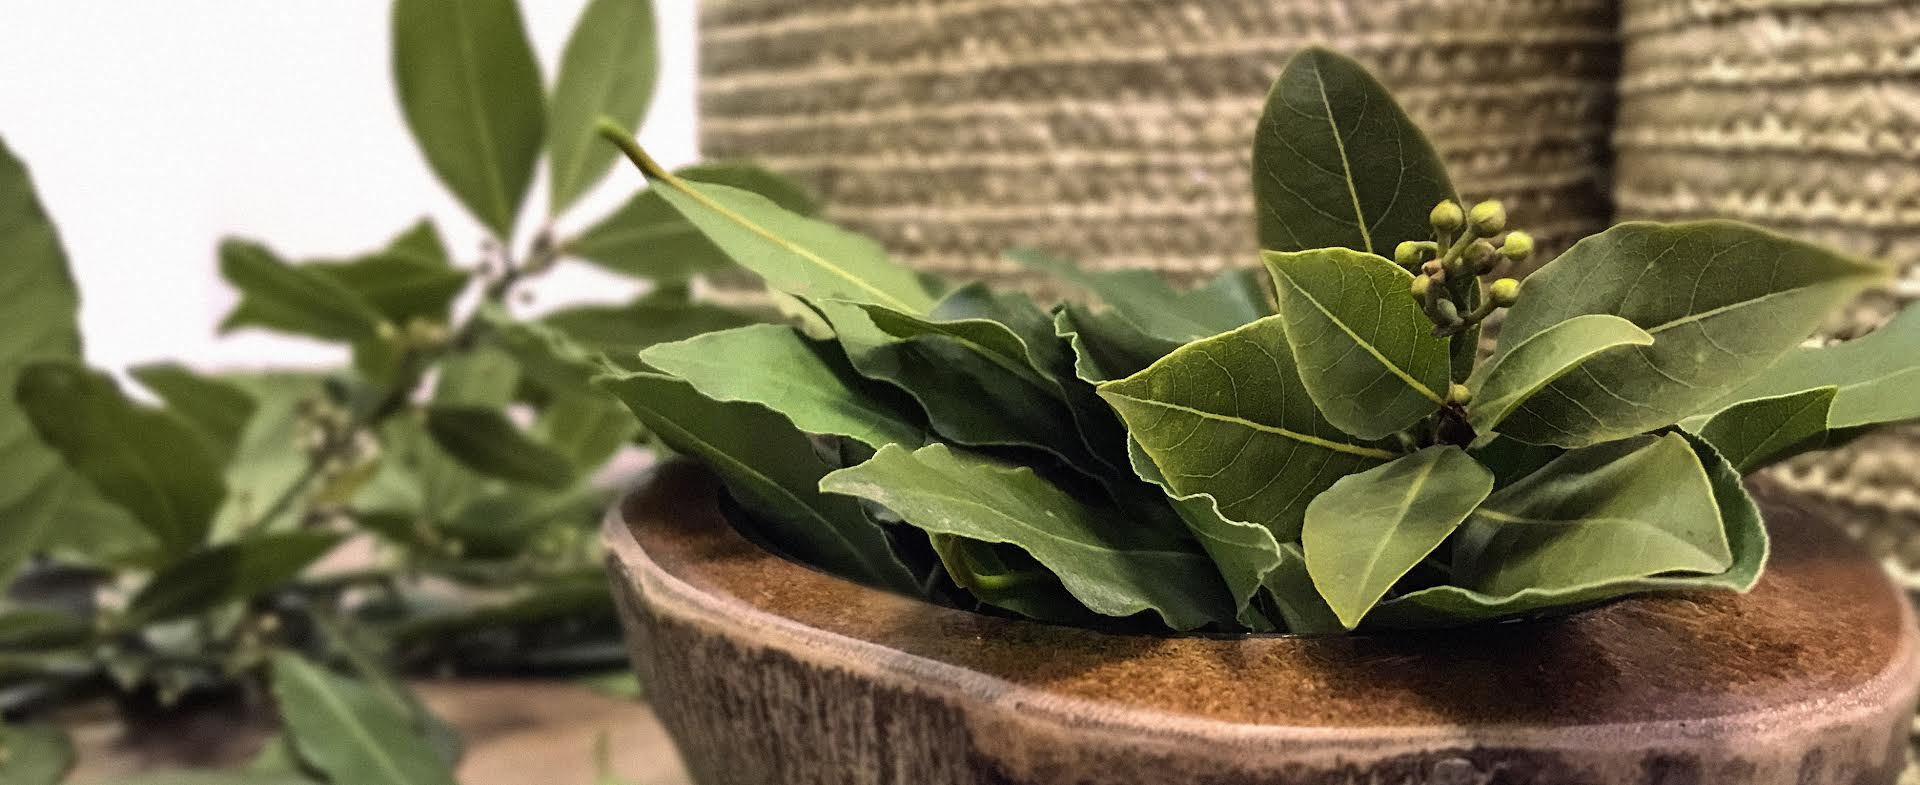 BAY LEAVES PRESENTATION